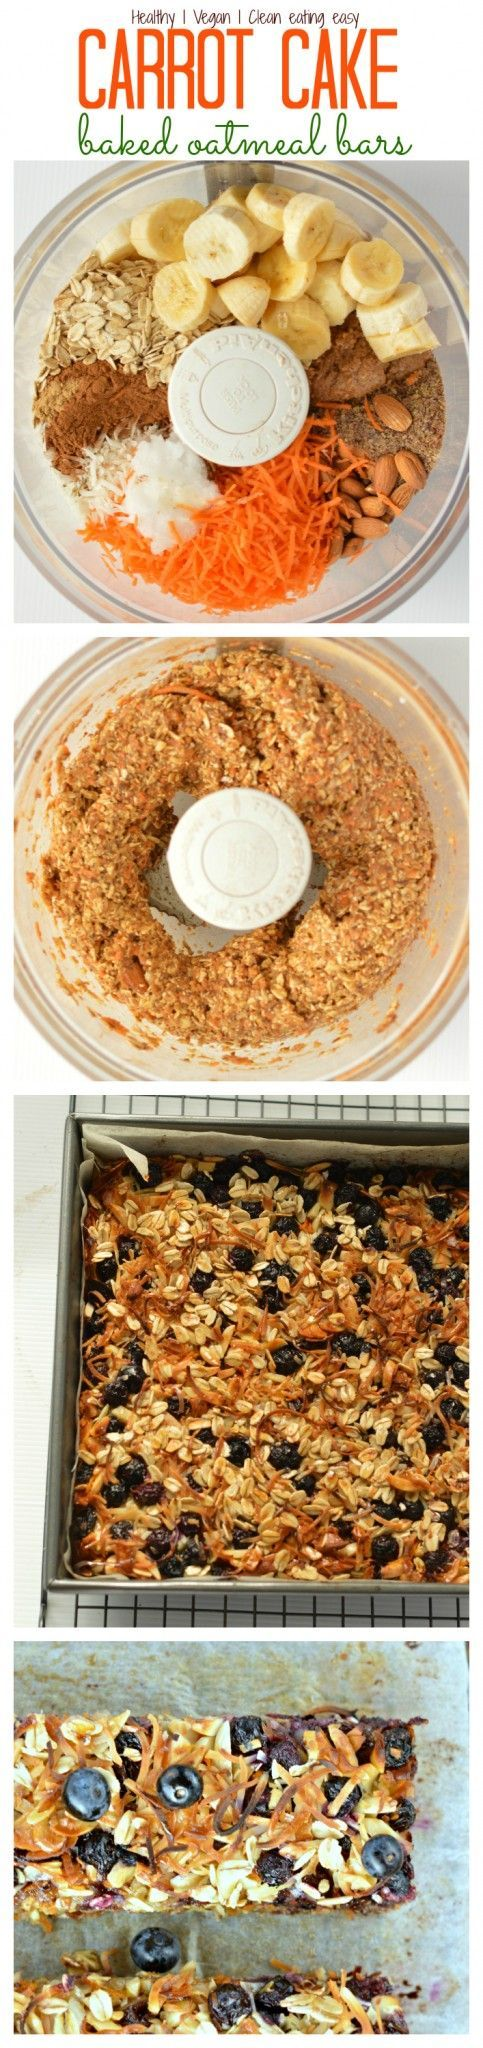 Healthy On-The-Go Breakfast | Make-ahead in 30 min, one-bowl recipe| Carrot Cake Oatmeal Bars with Flaxmeal & blueberries | Perfect for christmas breakfast